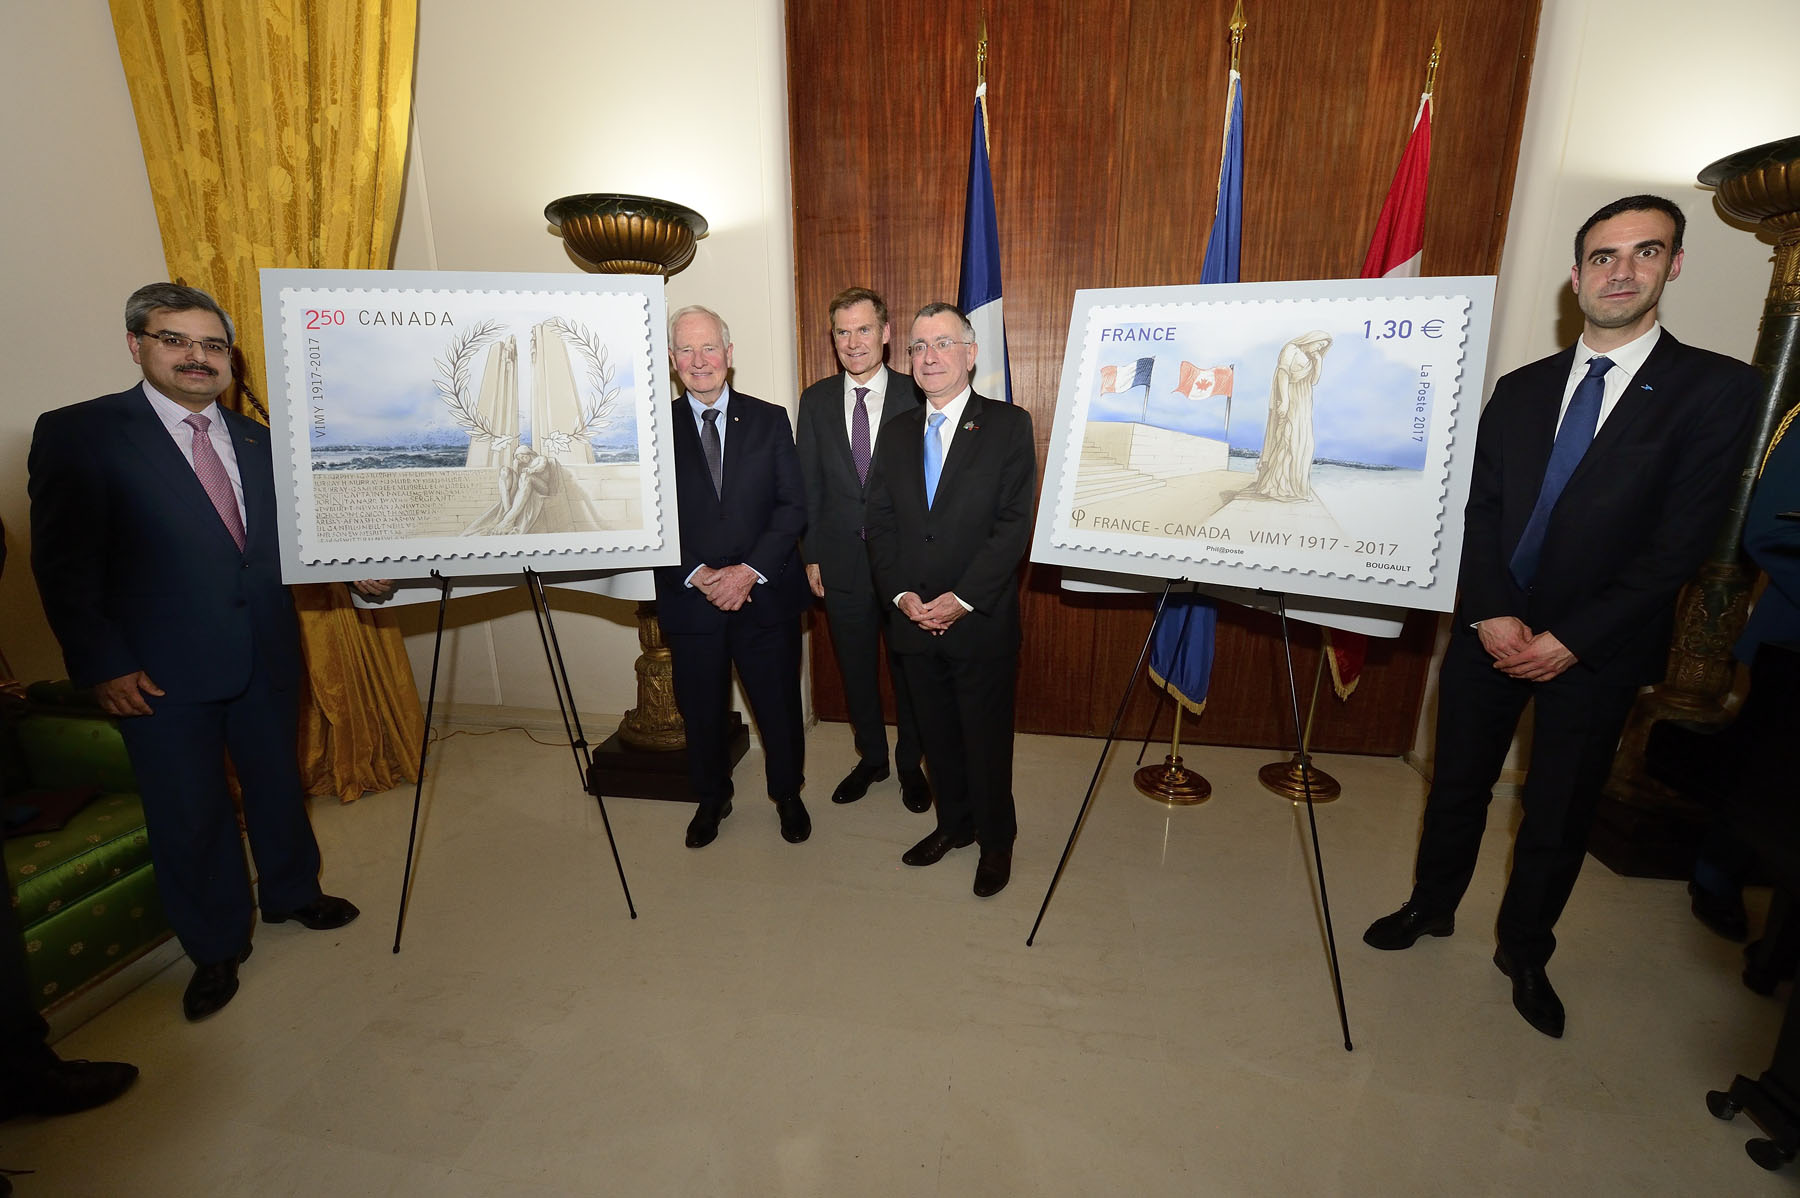 Both stamps were designed to honour the nearly 3 600 Canadian soldiers who were killed in action and the more than 7 000 who were wounded during the Battle of Vimy Ridge.